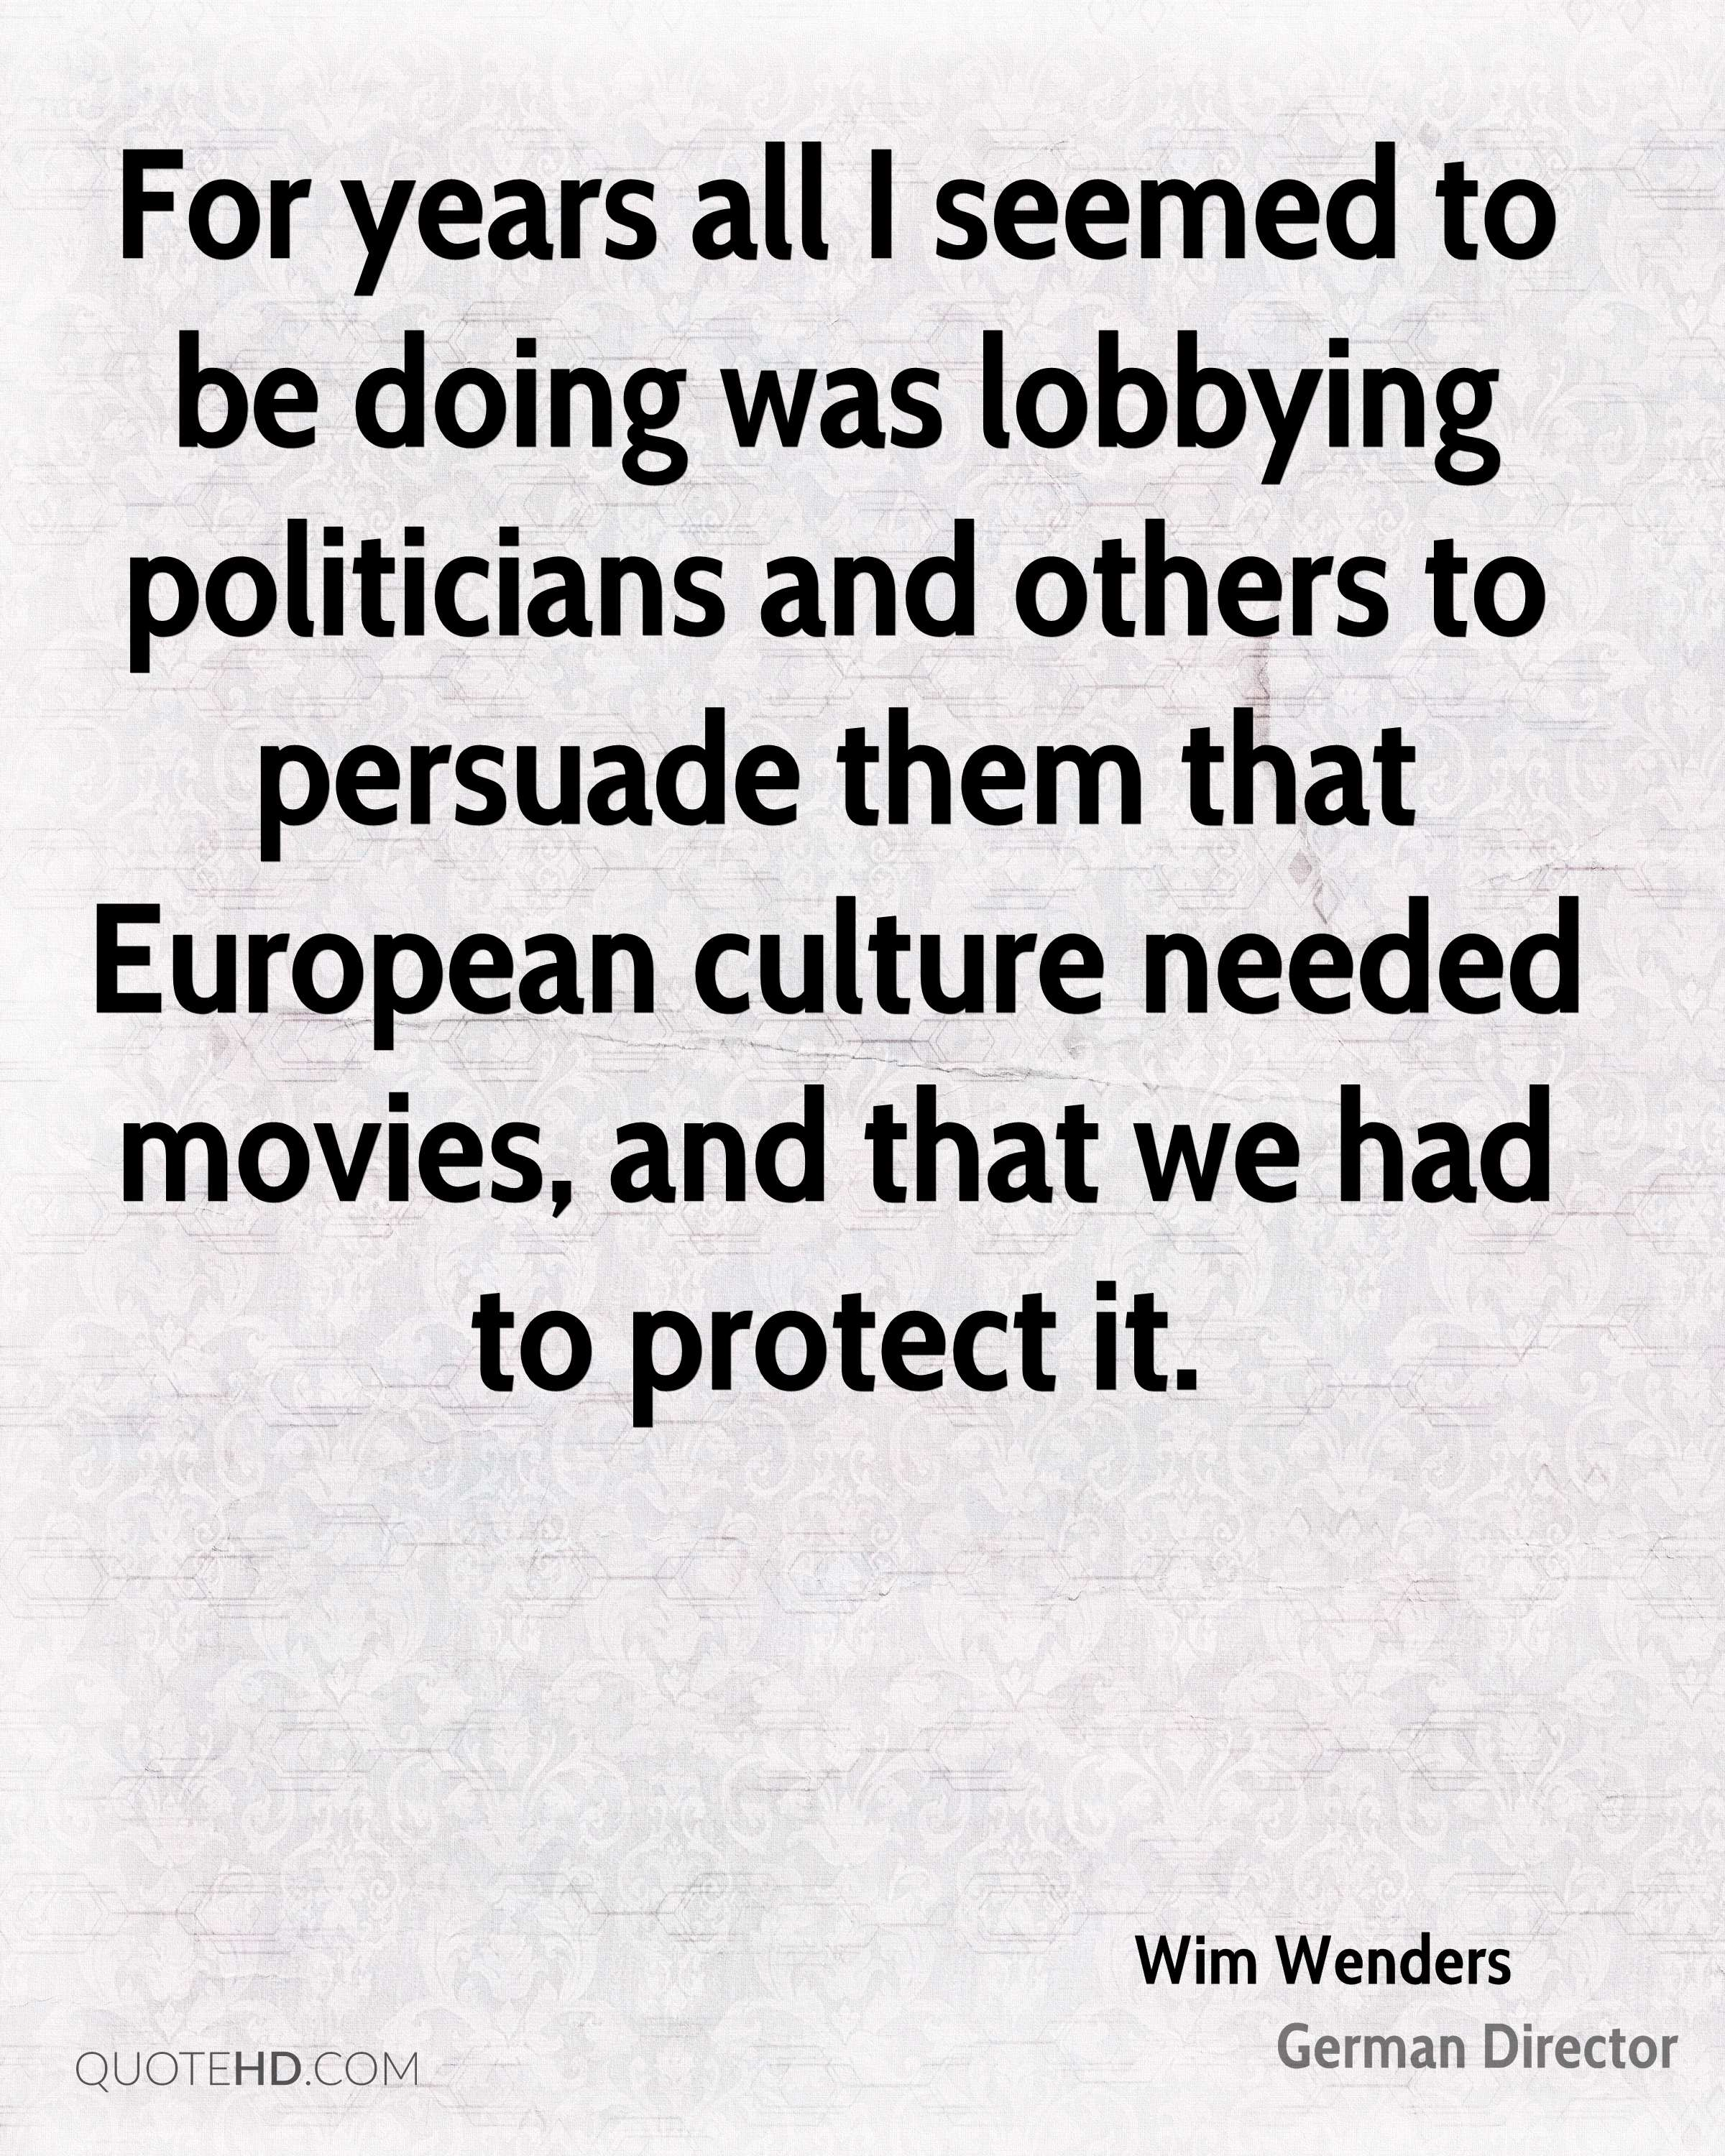 For years all I seemed to be doing was lobbying politicians and others to persuade them that European culture needed movies, and that we had to protect it.